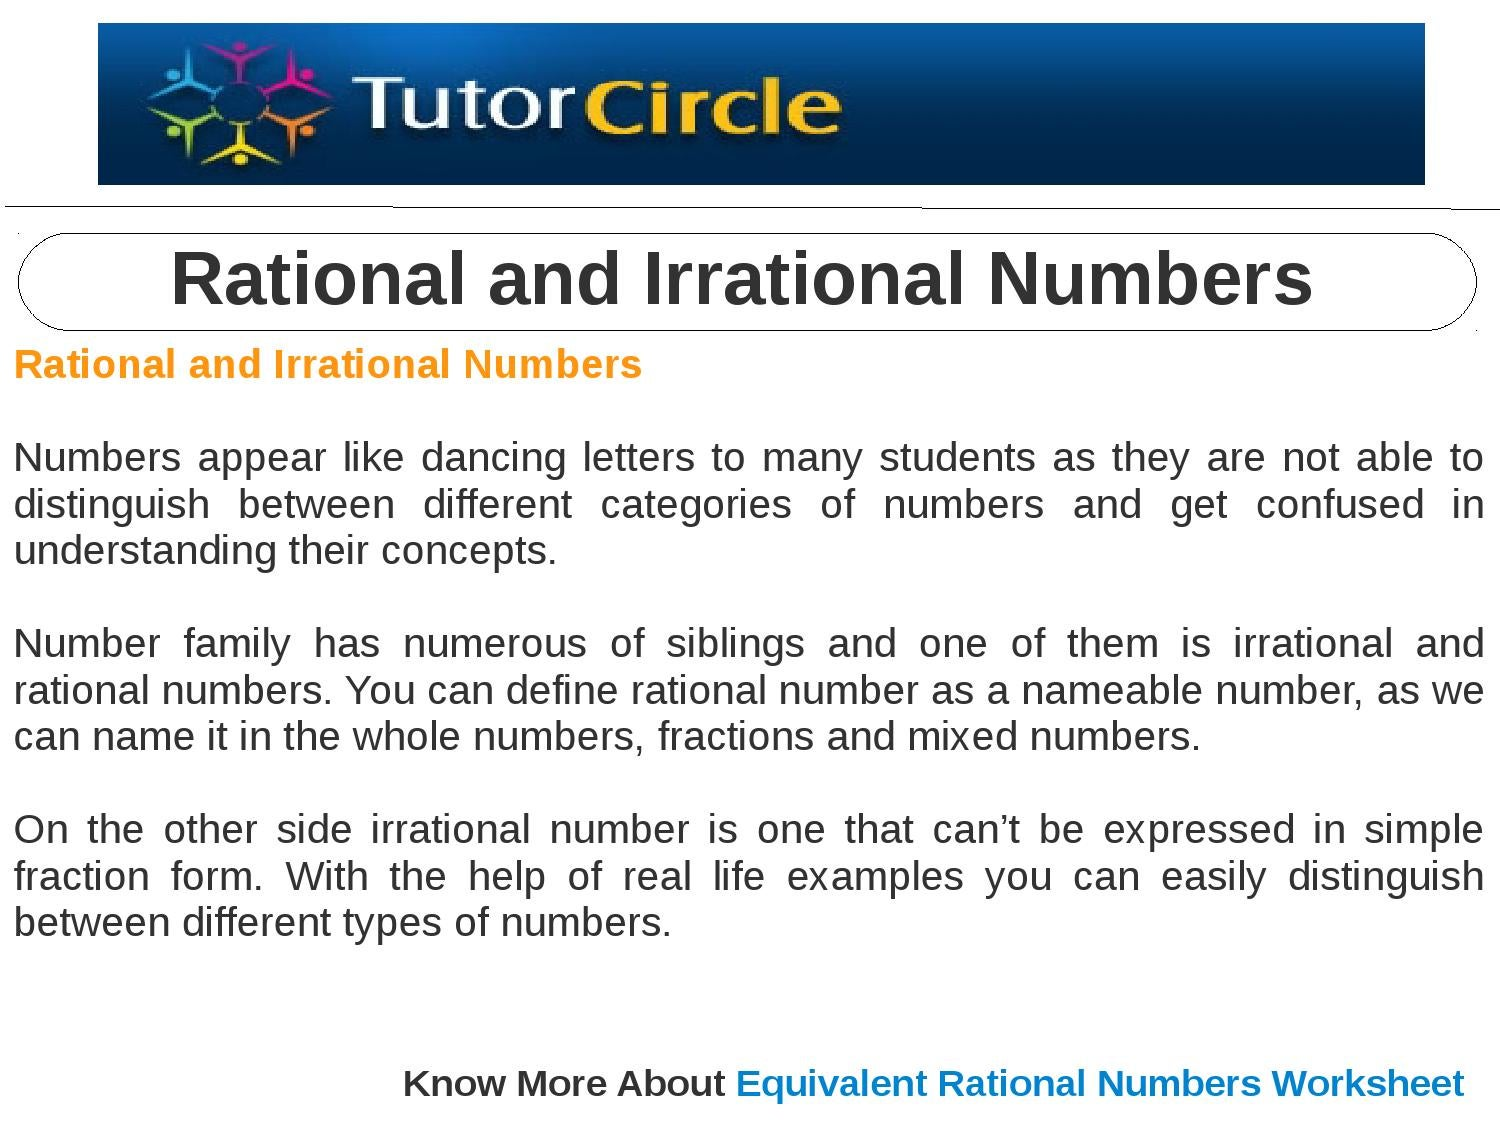 rational and irrational numbers by tutorcircle team - issuu